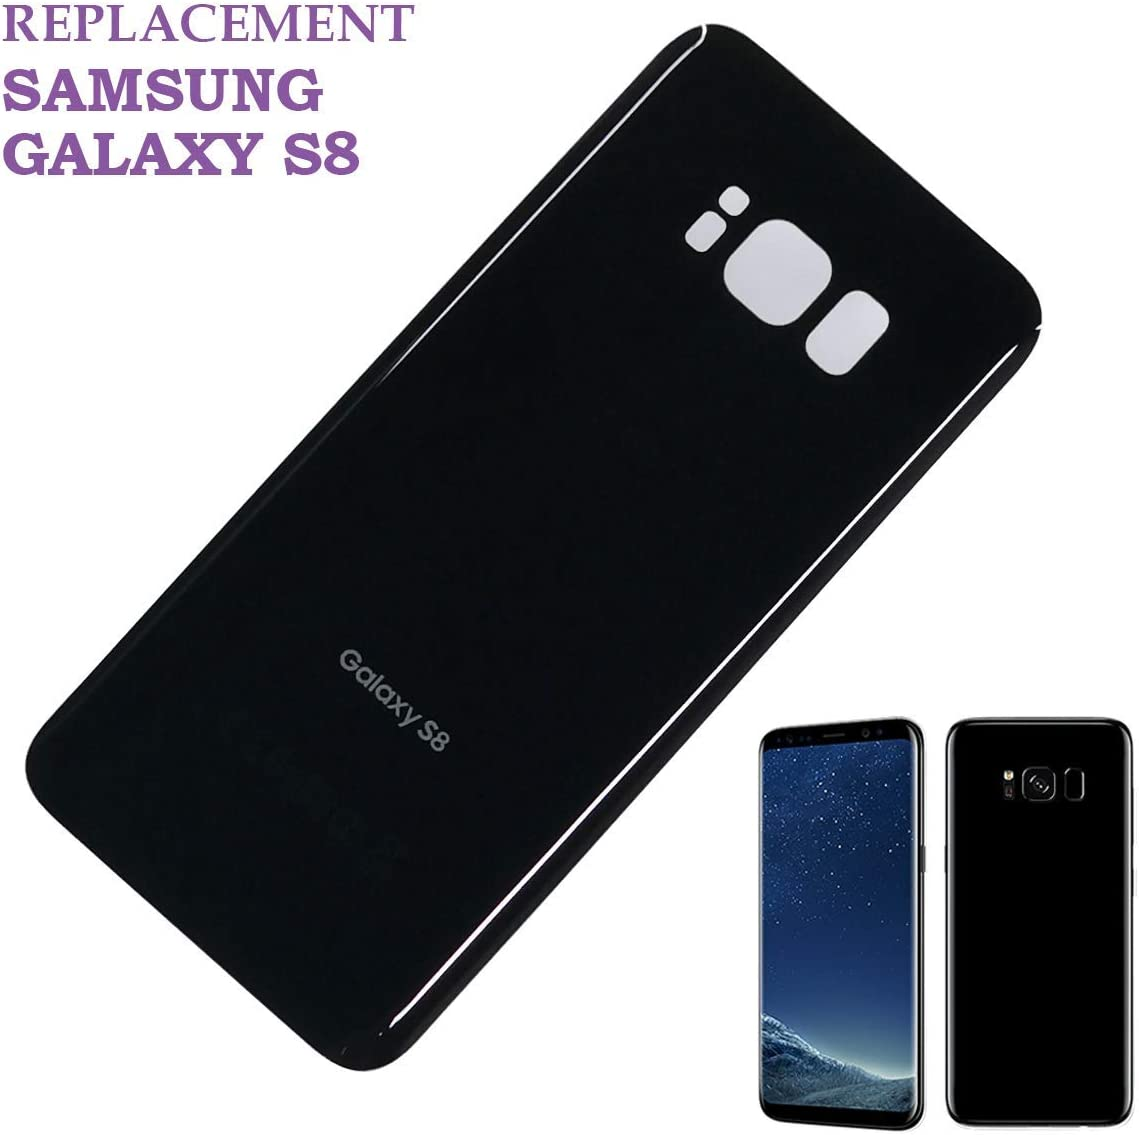 Original Replacement Back Glass Cover Back Battery Door w//Pre-Installed Adhesive Samsung Galaxy S8 OEM Black All Models G950 All Carriers OEM Replacement